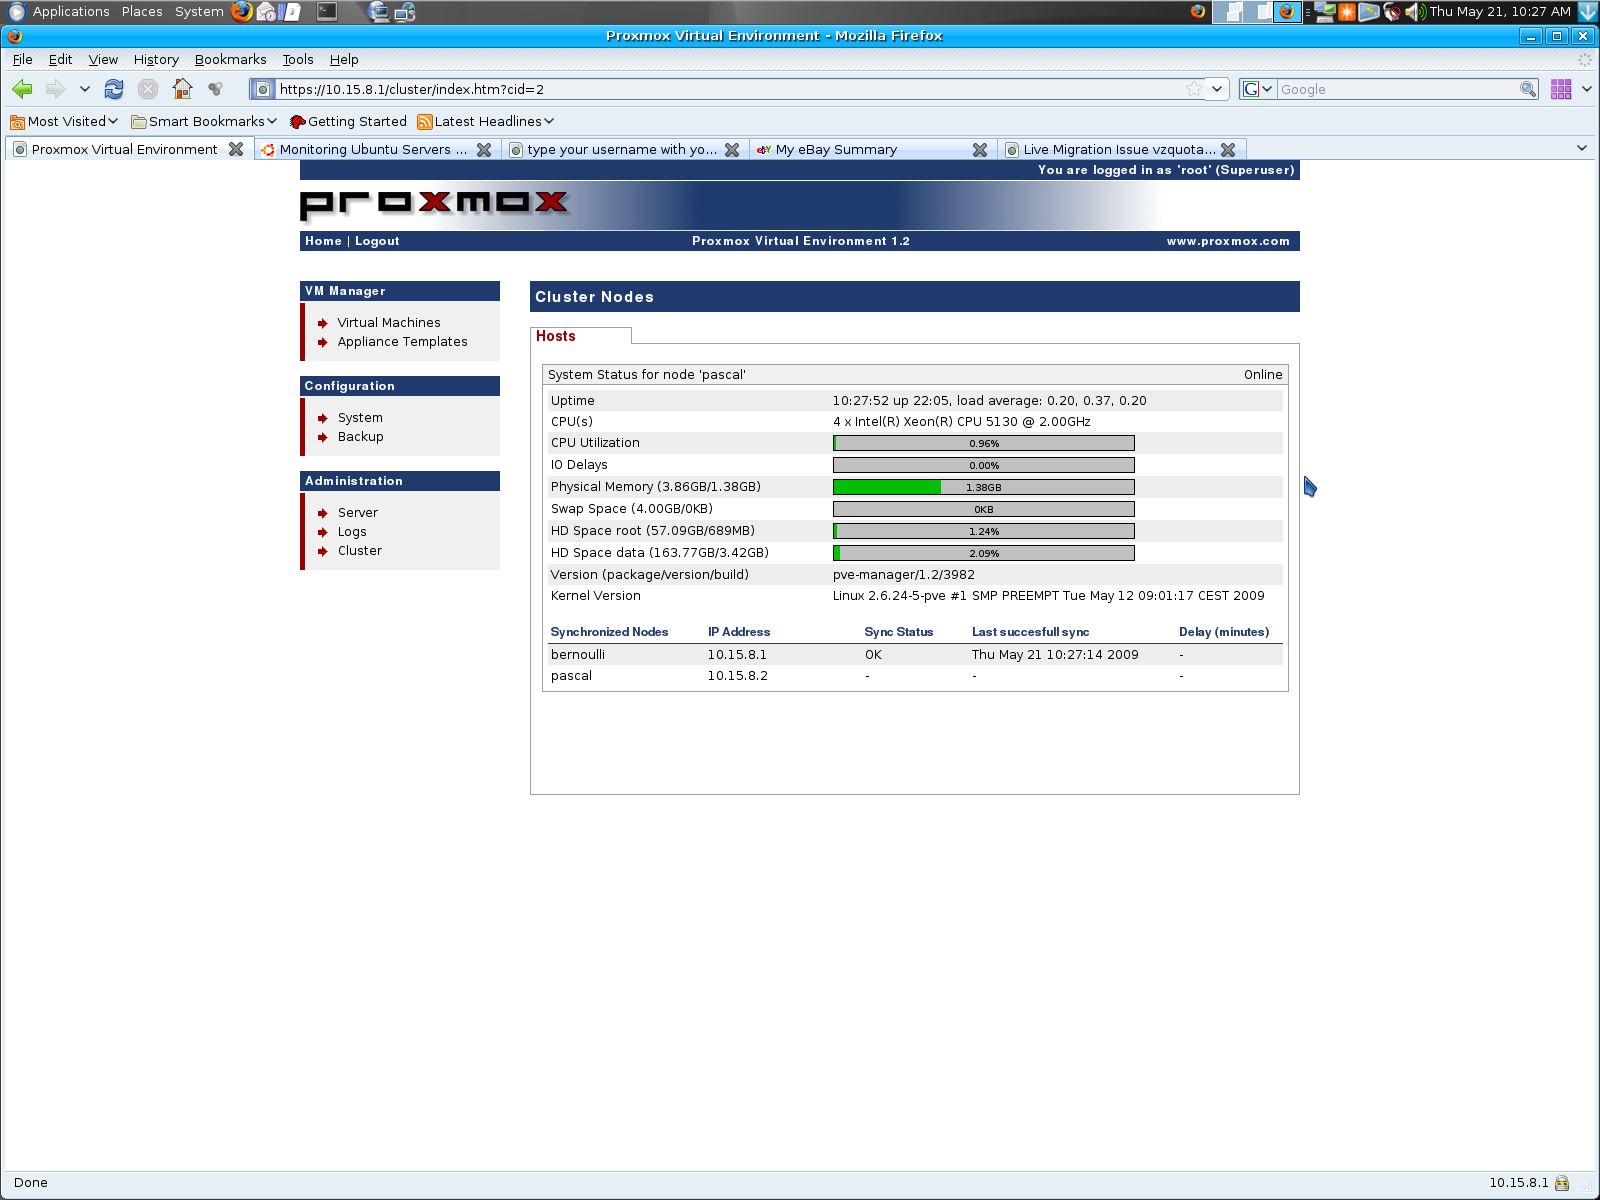 squishydale hypernexus net » Proxmox Virtual Environment…now this is